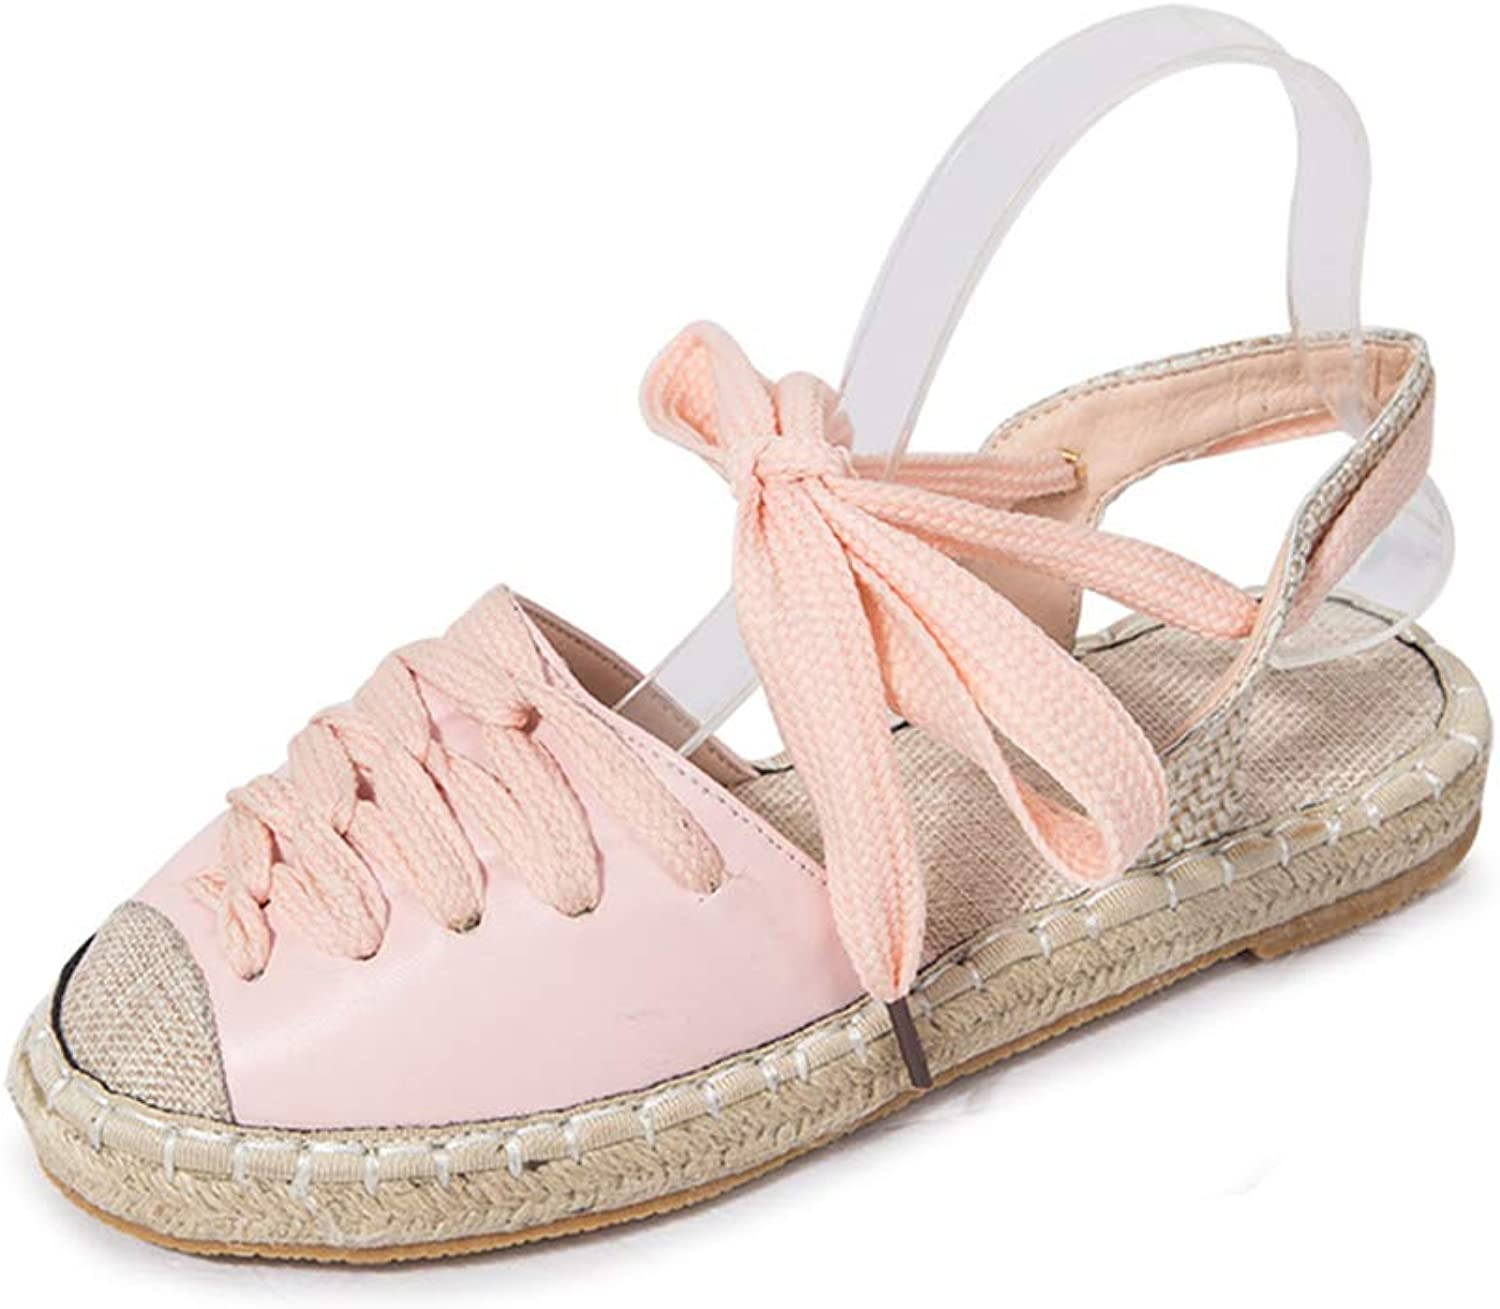 HEDDK Plus Size 35-42 Summer Women Casual Flat Espadrilles shoes Sandals Woman Ankle Strap Flock Straw Sewing Footwear